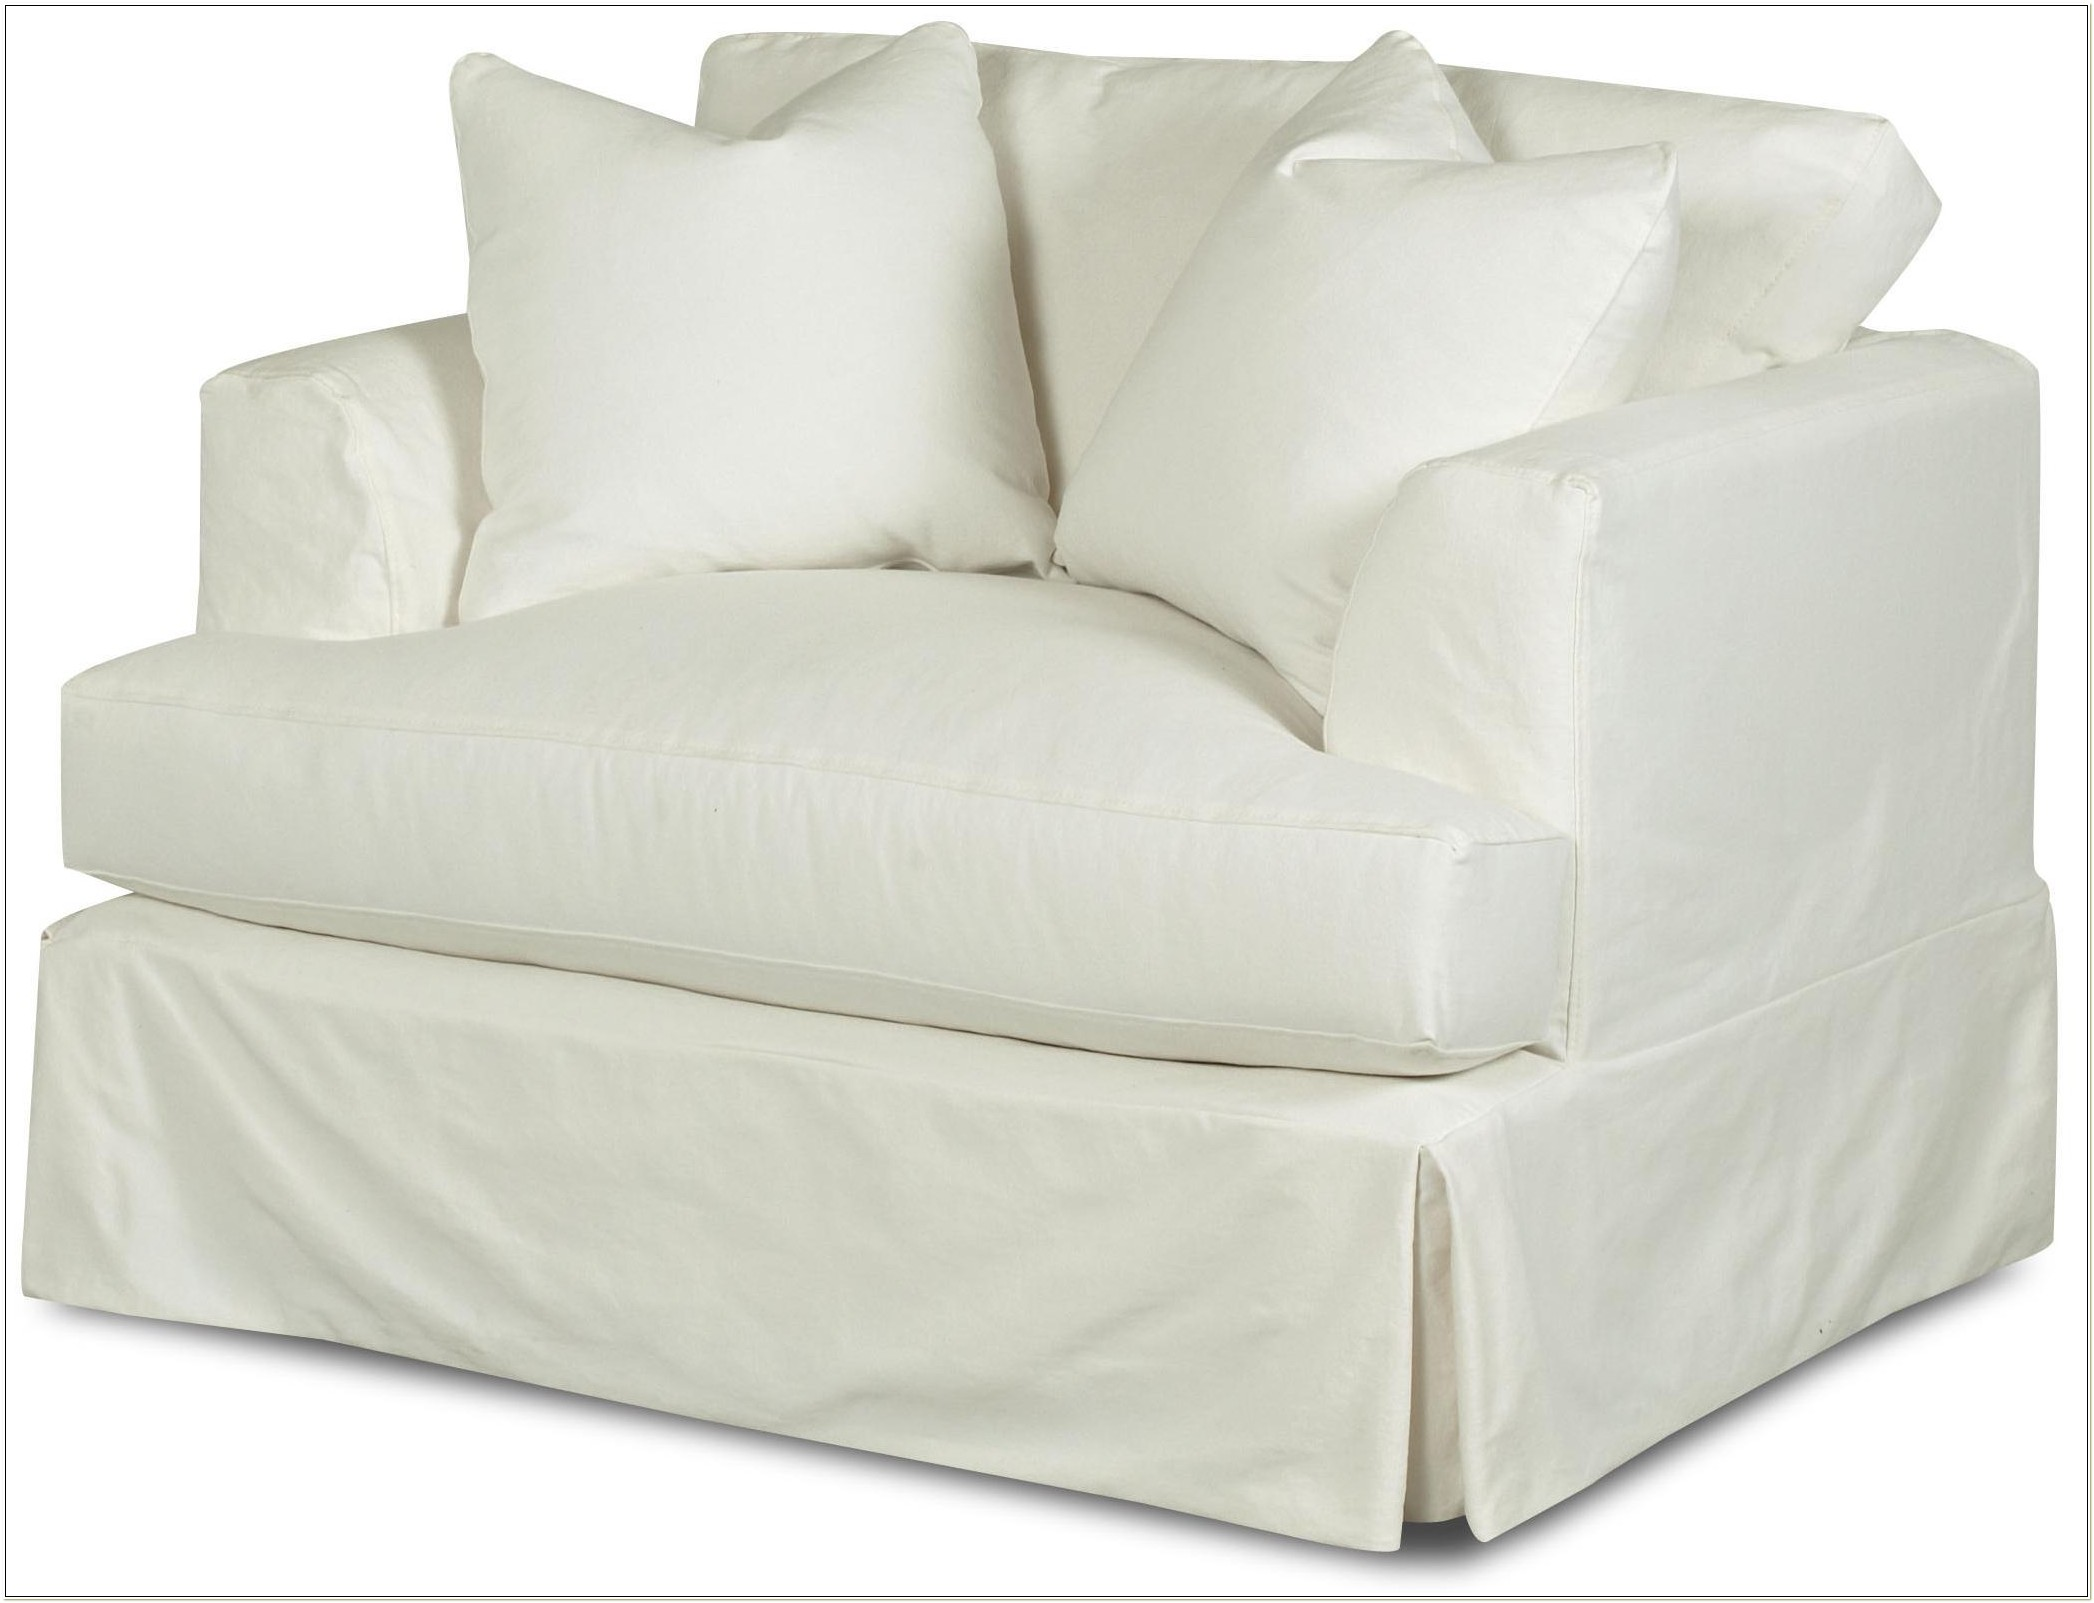 T Cushion Chair Slipcover With Ottoman